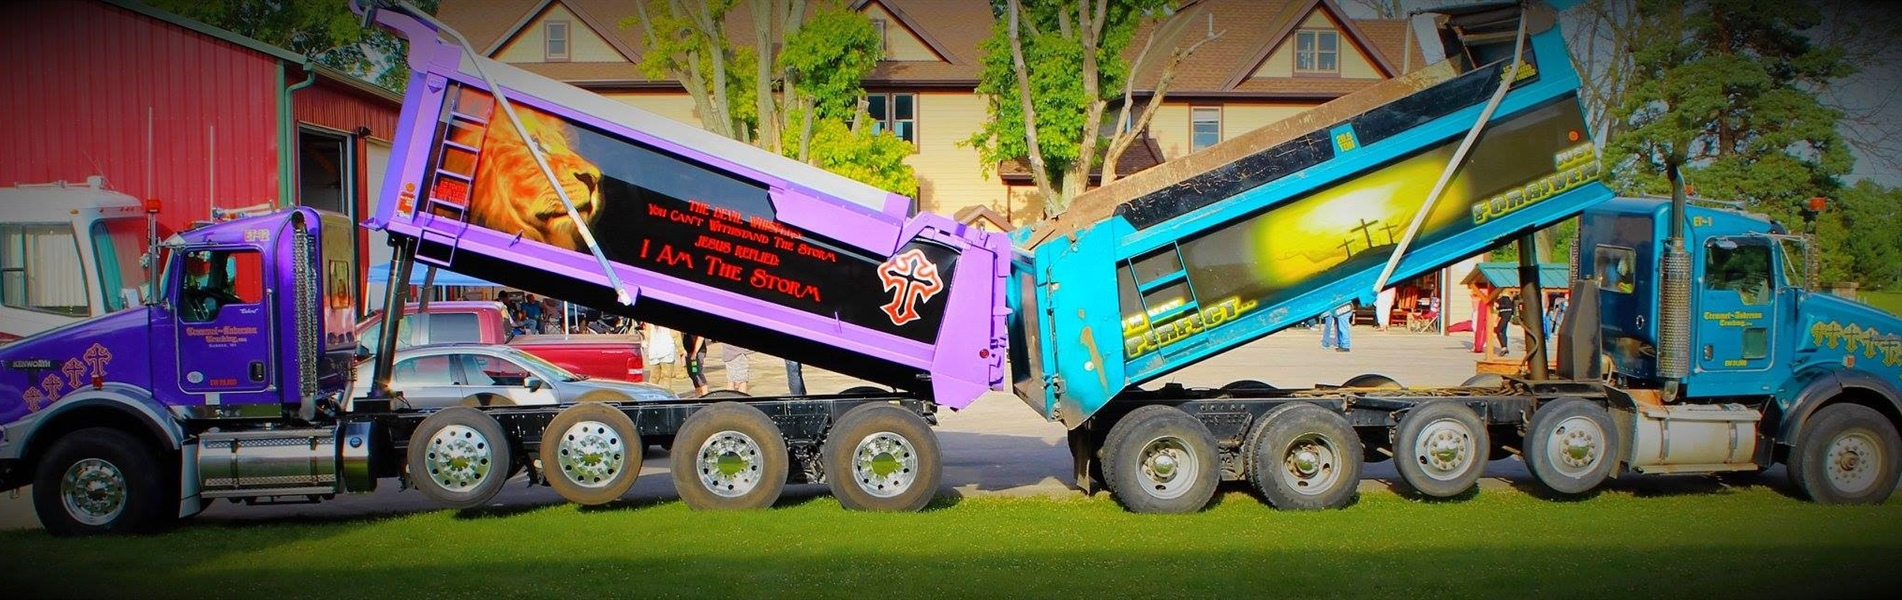 Dump Truck Services Milwaukee WI Hauling Excavating Concrete